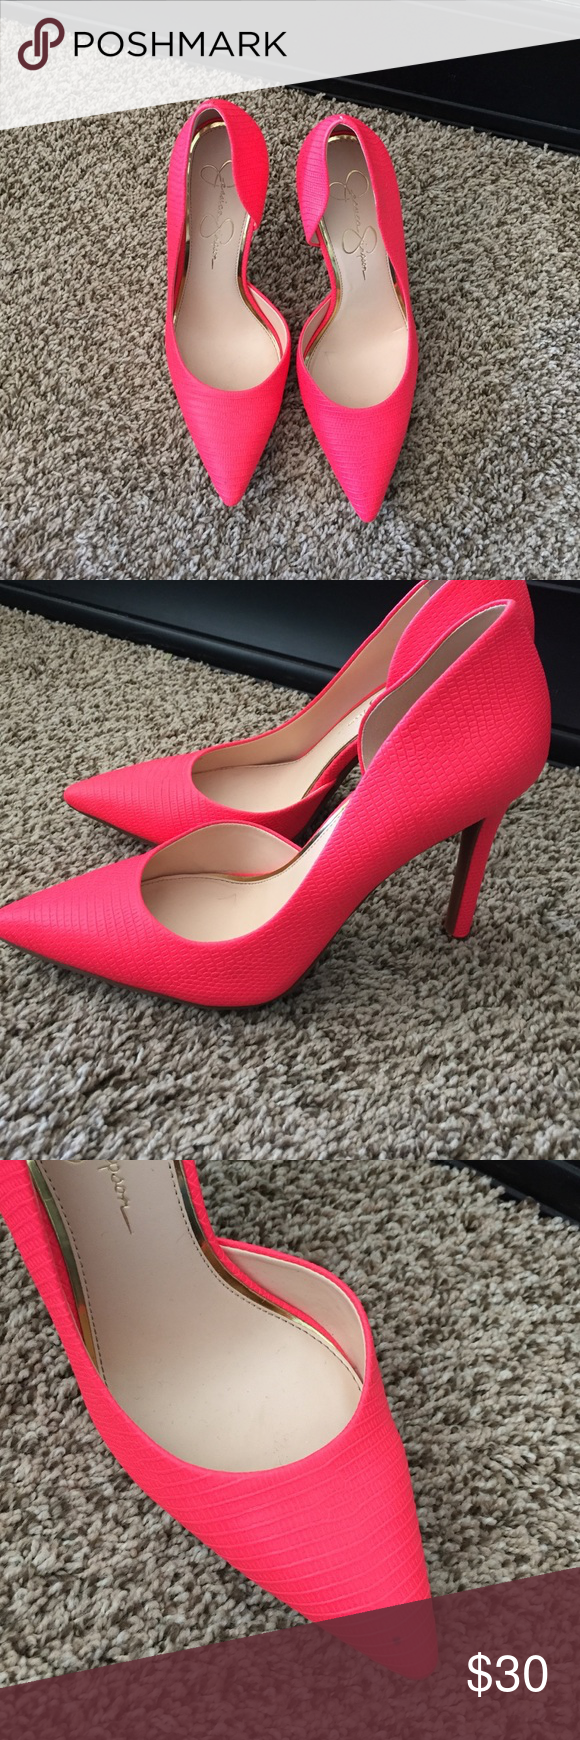 68fdf7c2a1b6 Jessica Simpson hot pink heels. Hot pink Jessica Simpson heels size 8  m.like new. Small imperfection on the toe. Jessica Simpson Shoes Heels